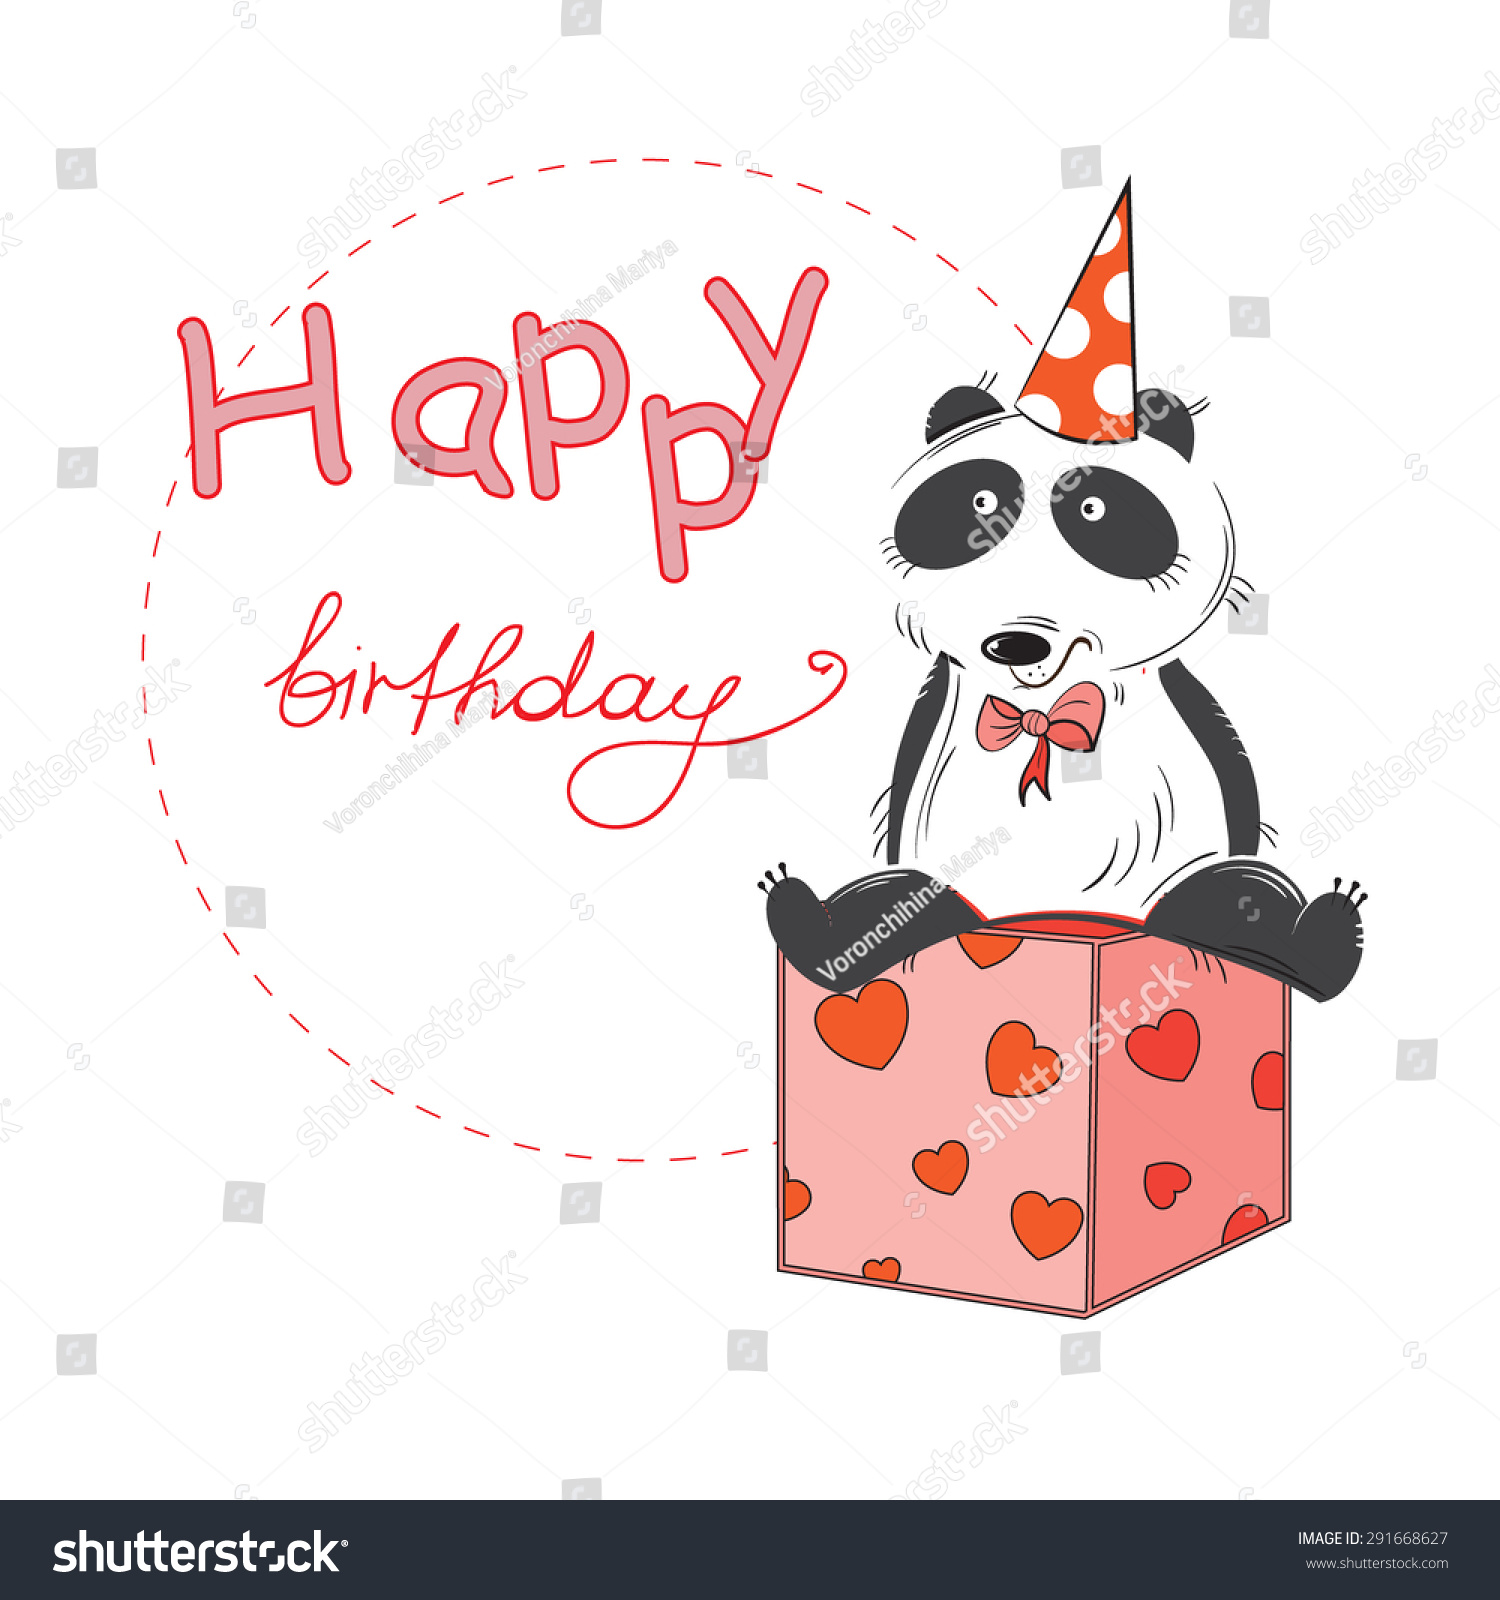 Greeting Card Cartoon Panda Birthday Greetings Stock Vector